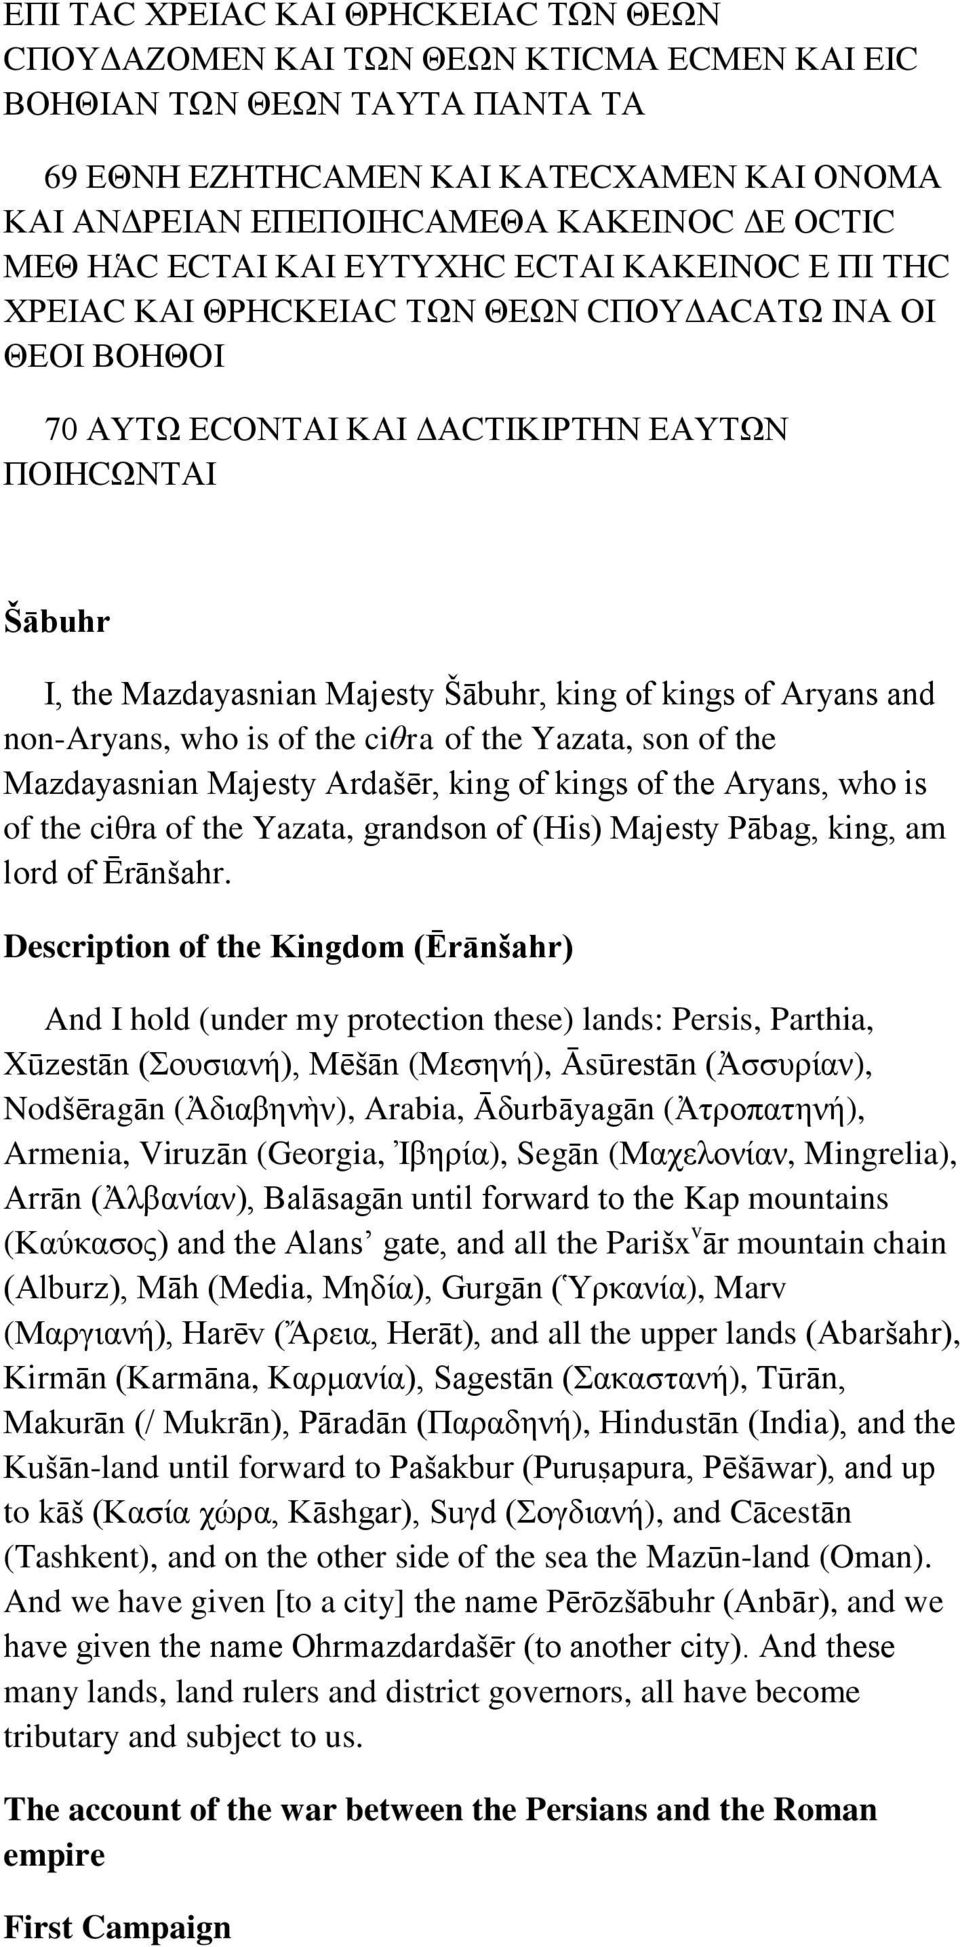 Majesty Šābuhr, king of kings of Aryans and non-aryans, who is of the ciθra of the Yazata, son of the Mazdayasnian Majesty Ardašēr, king of kings of the Aryans, who is of the ciθra of the Yazata,